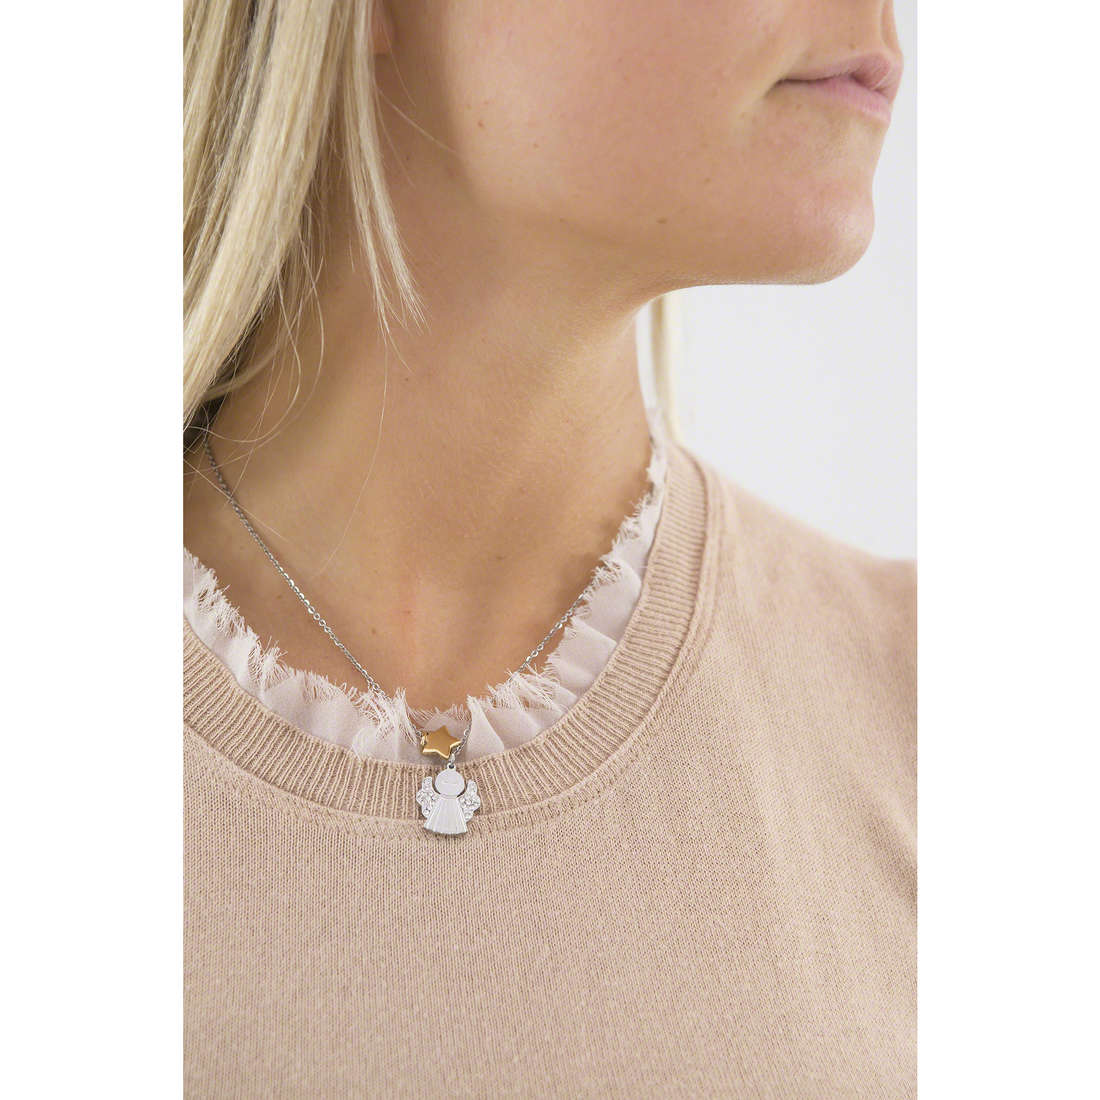 Sector necklaces Family & Friends woman SACG33 indosso